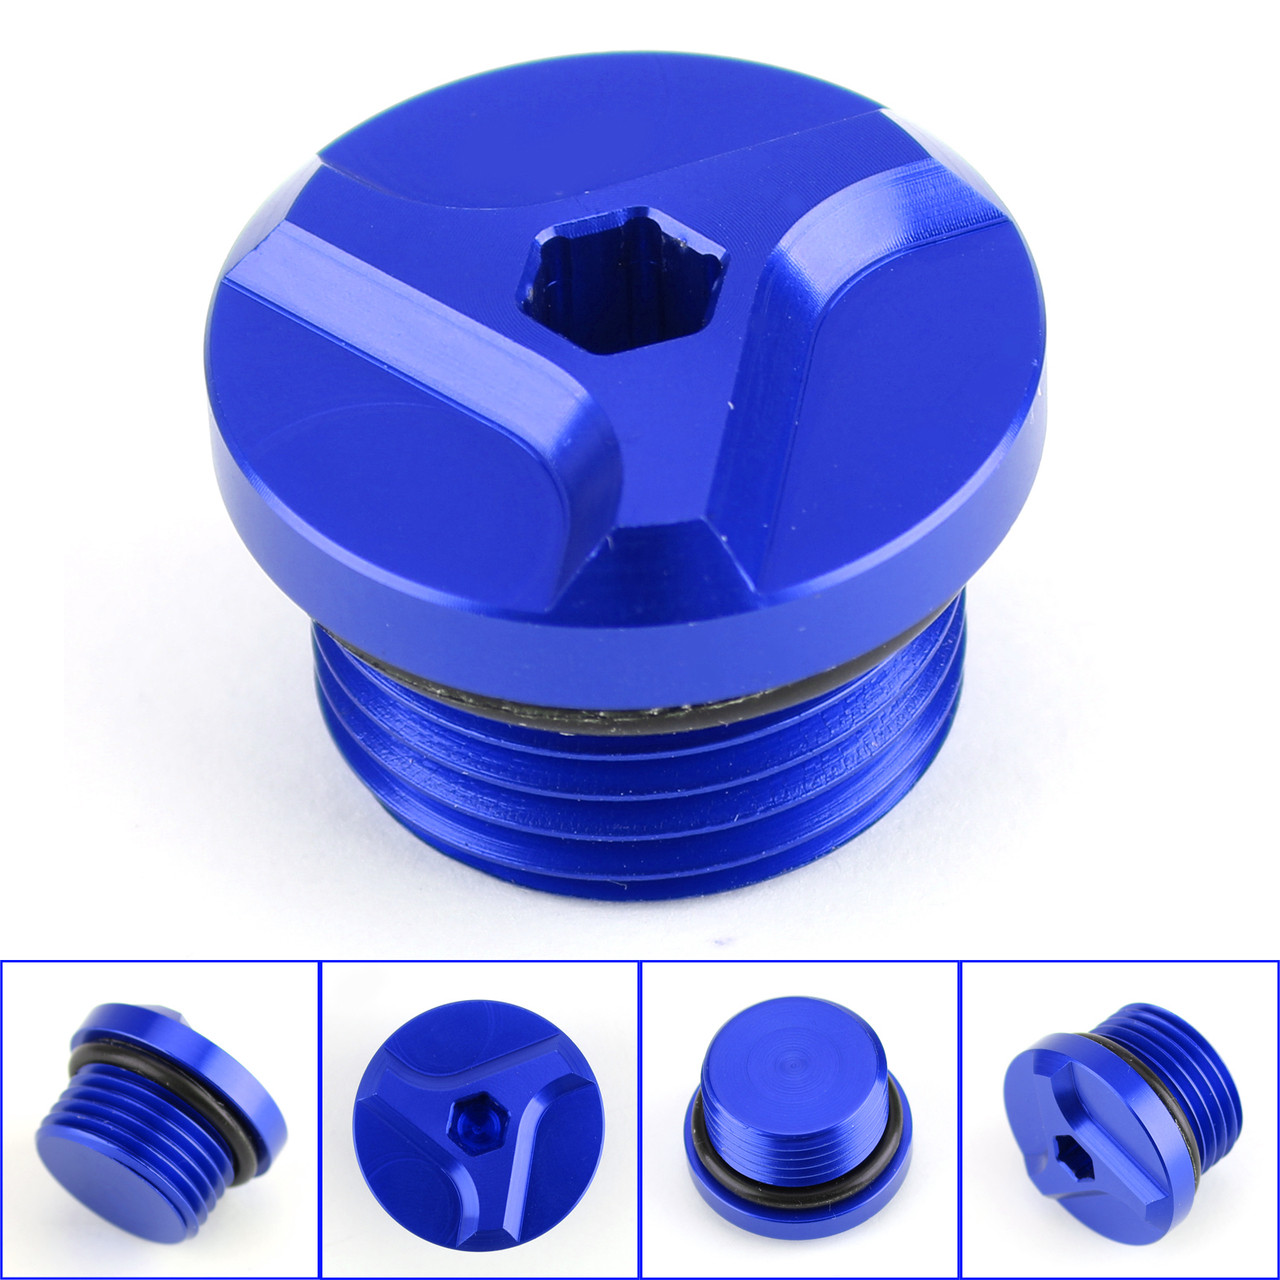 Aluminum Engine Oil Filler Cap For BMW S1000R 14-18 S1000XR 15-18 G310GS 17-18 Blue